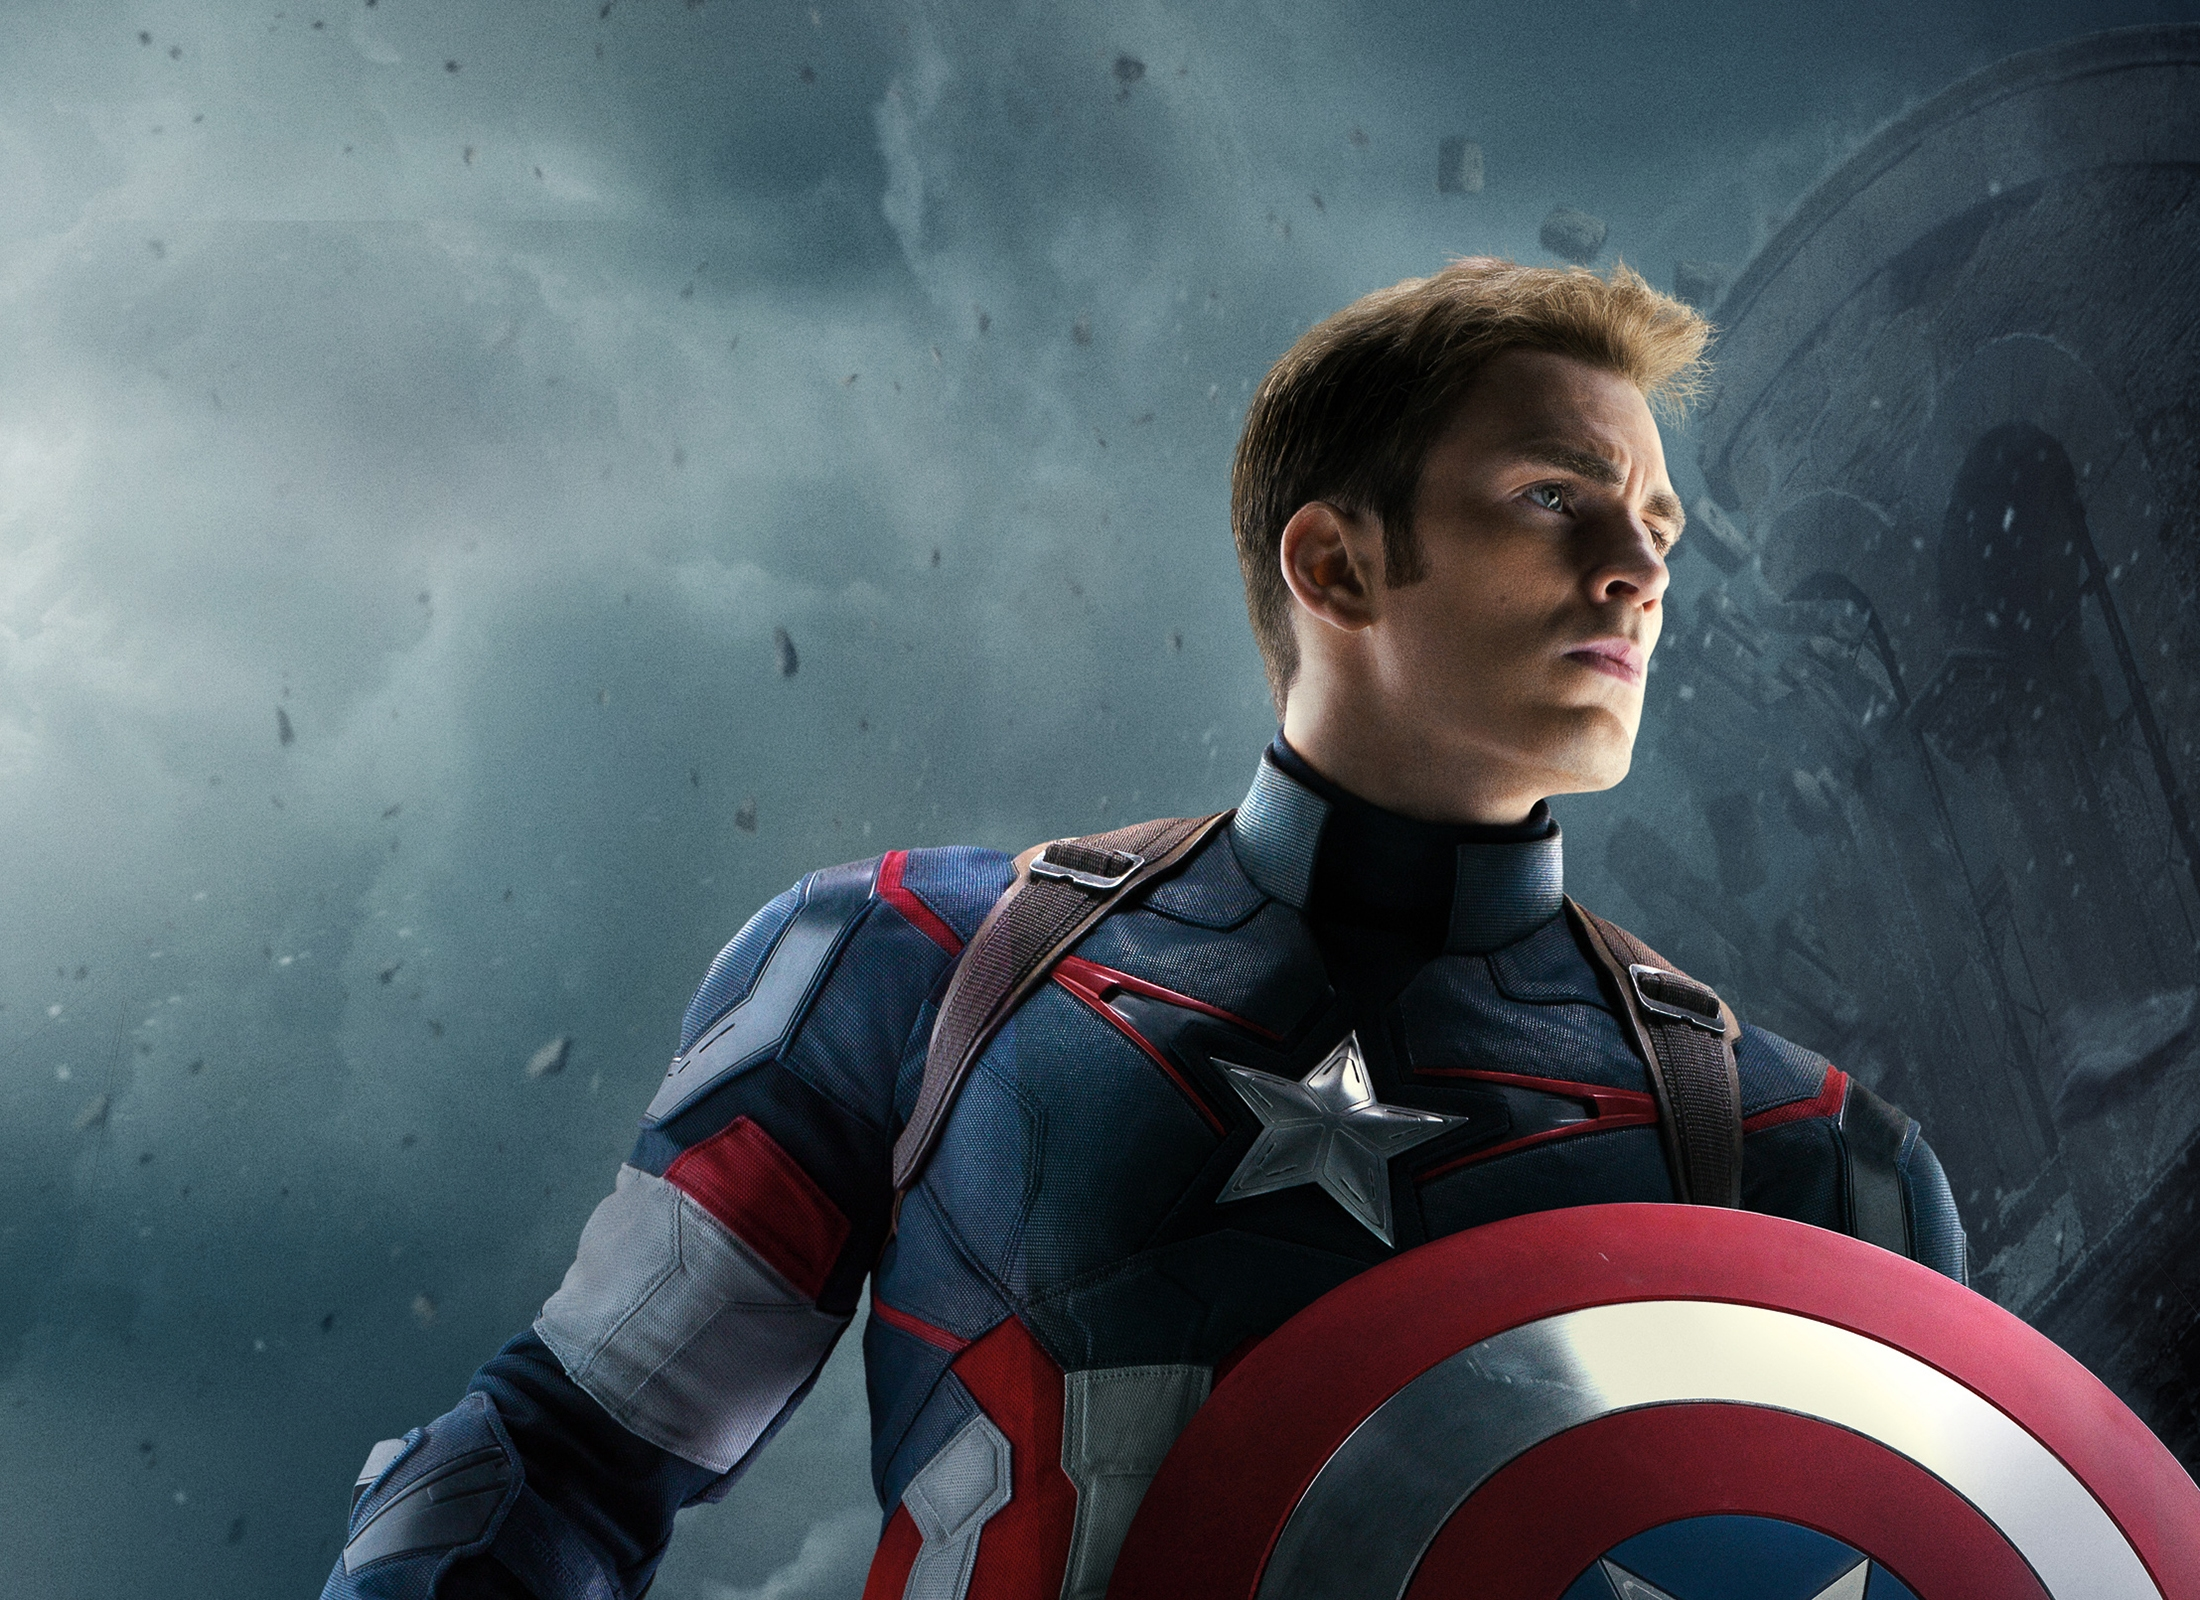 Hd wallpaper of captain america - Captain America 3